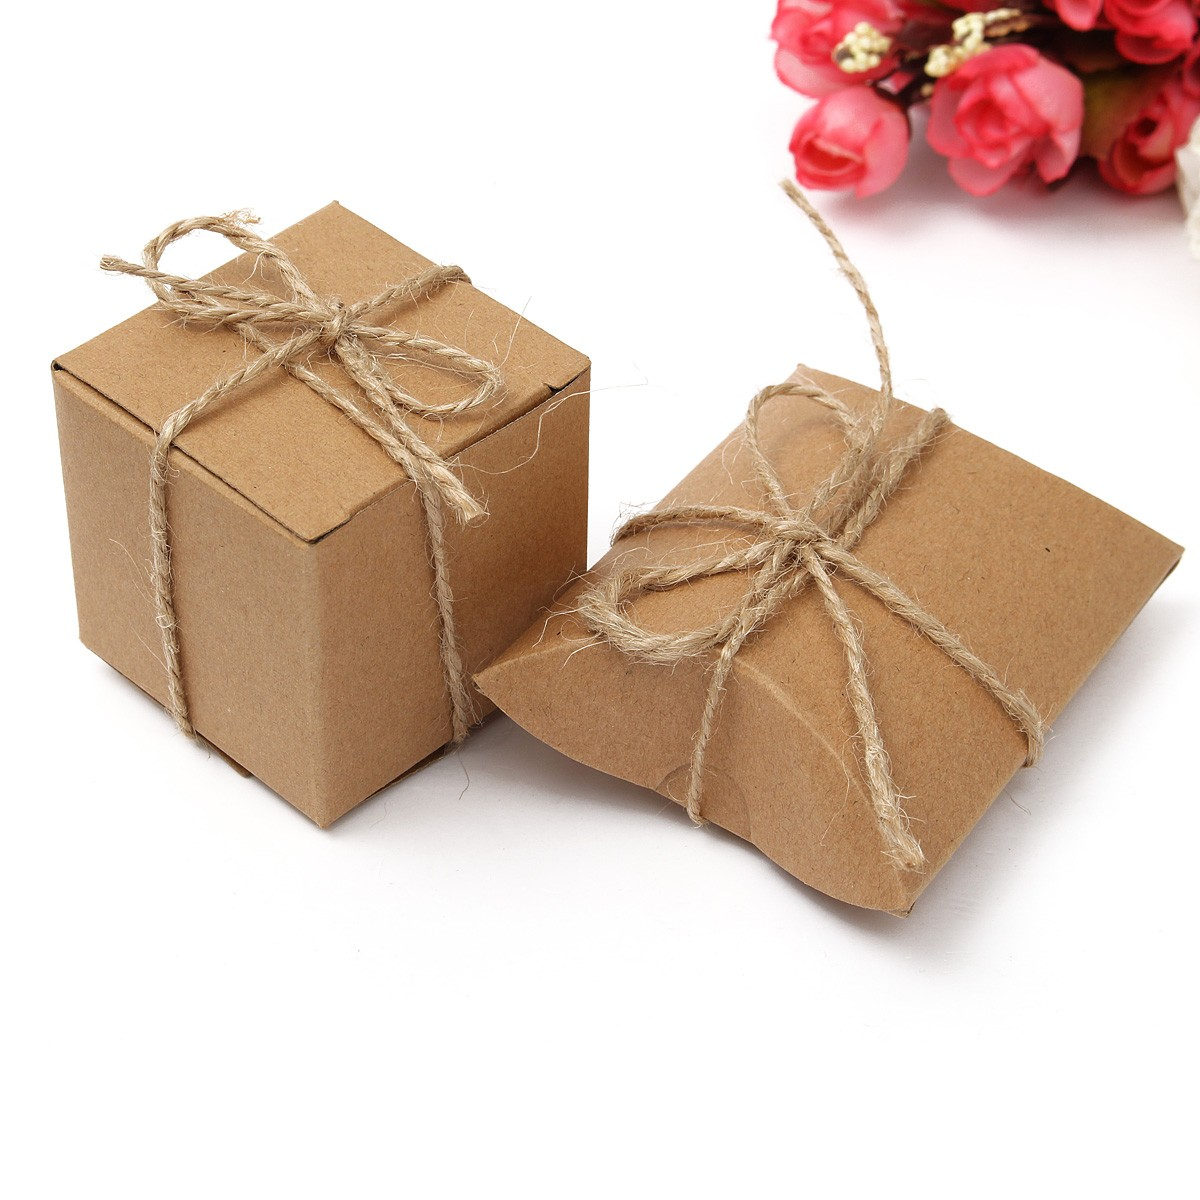 Wedding Gift Box Wholesale : ... 12 Brown Card Gift Pillow Box Boxes Wedding FavourWholesale Party Box